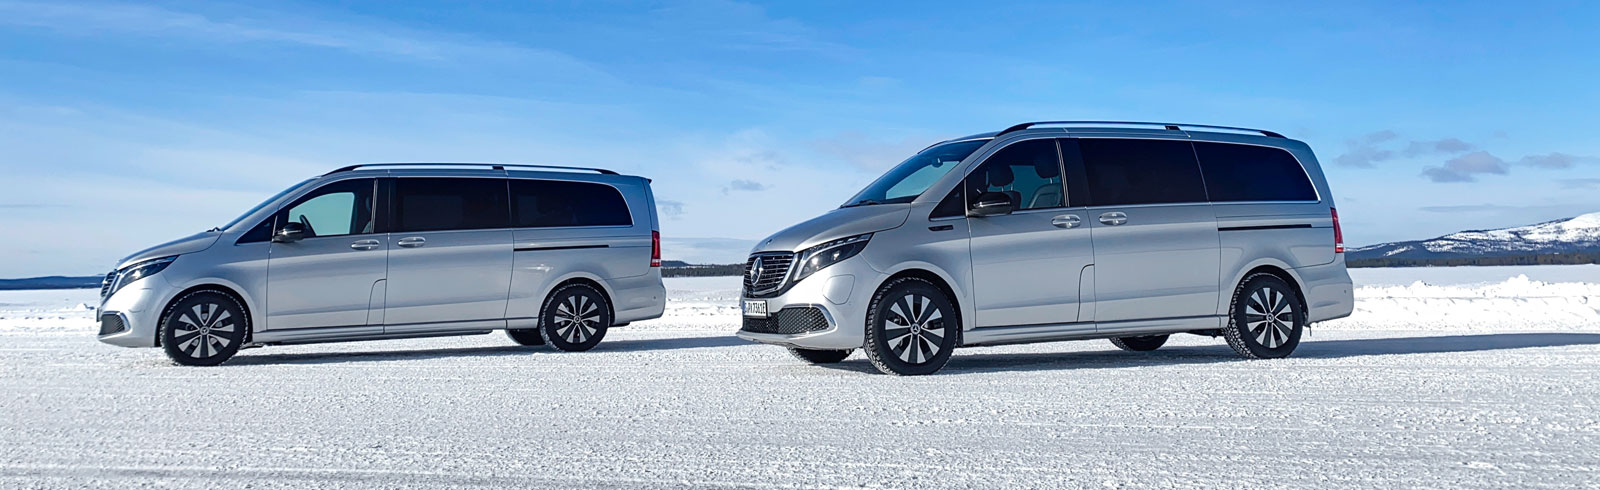 Mercedes-Benz EQV tested in winter conditions